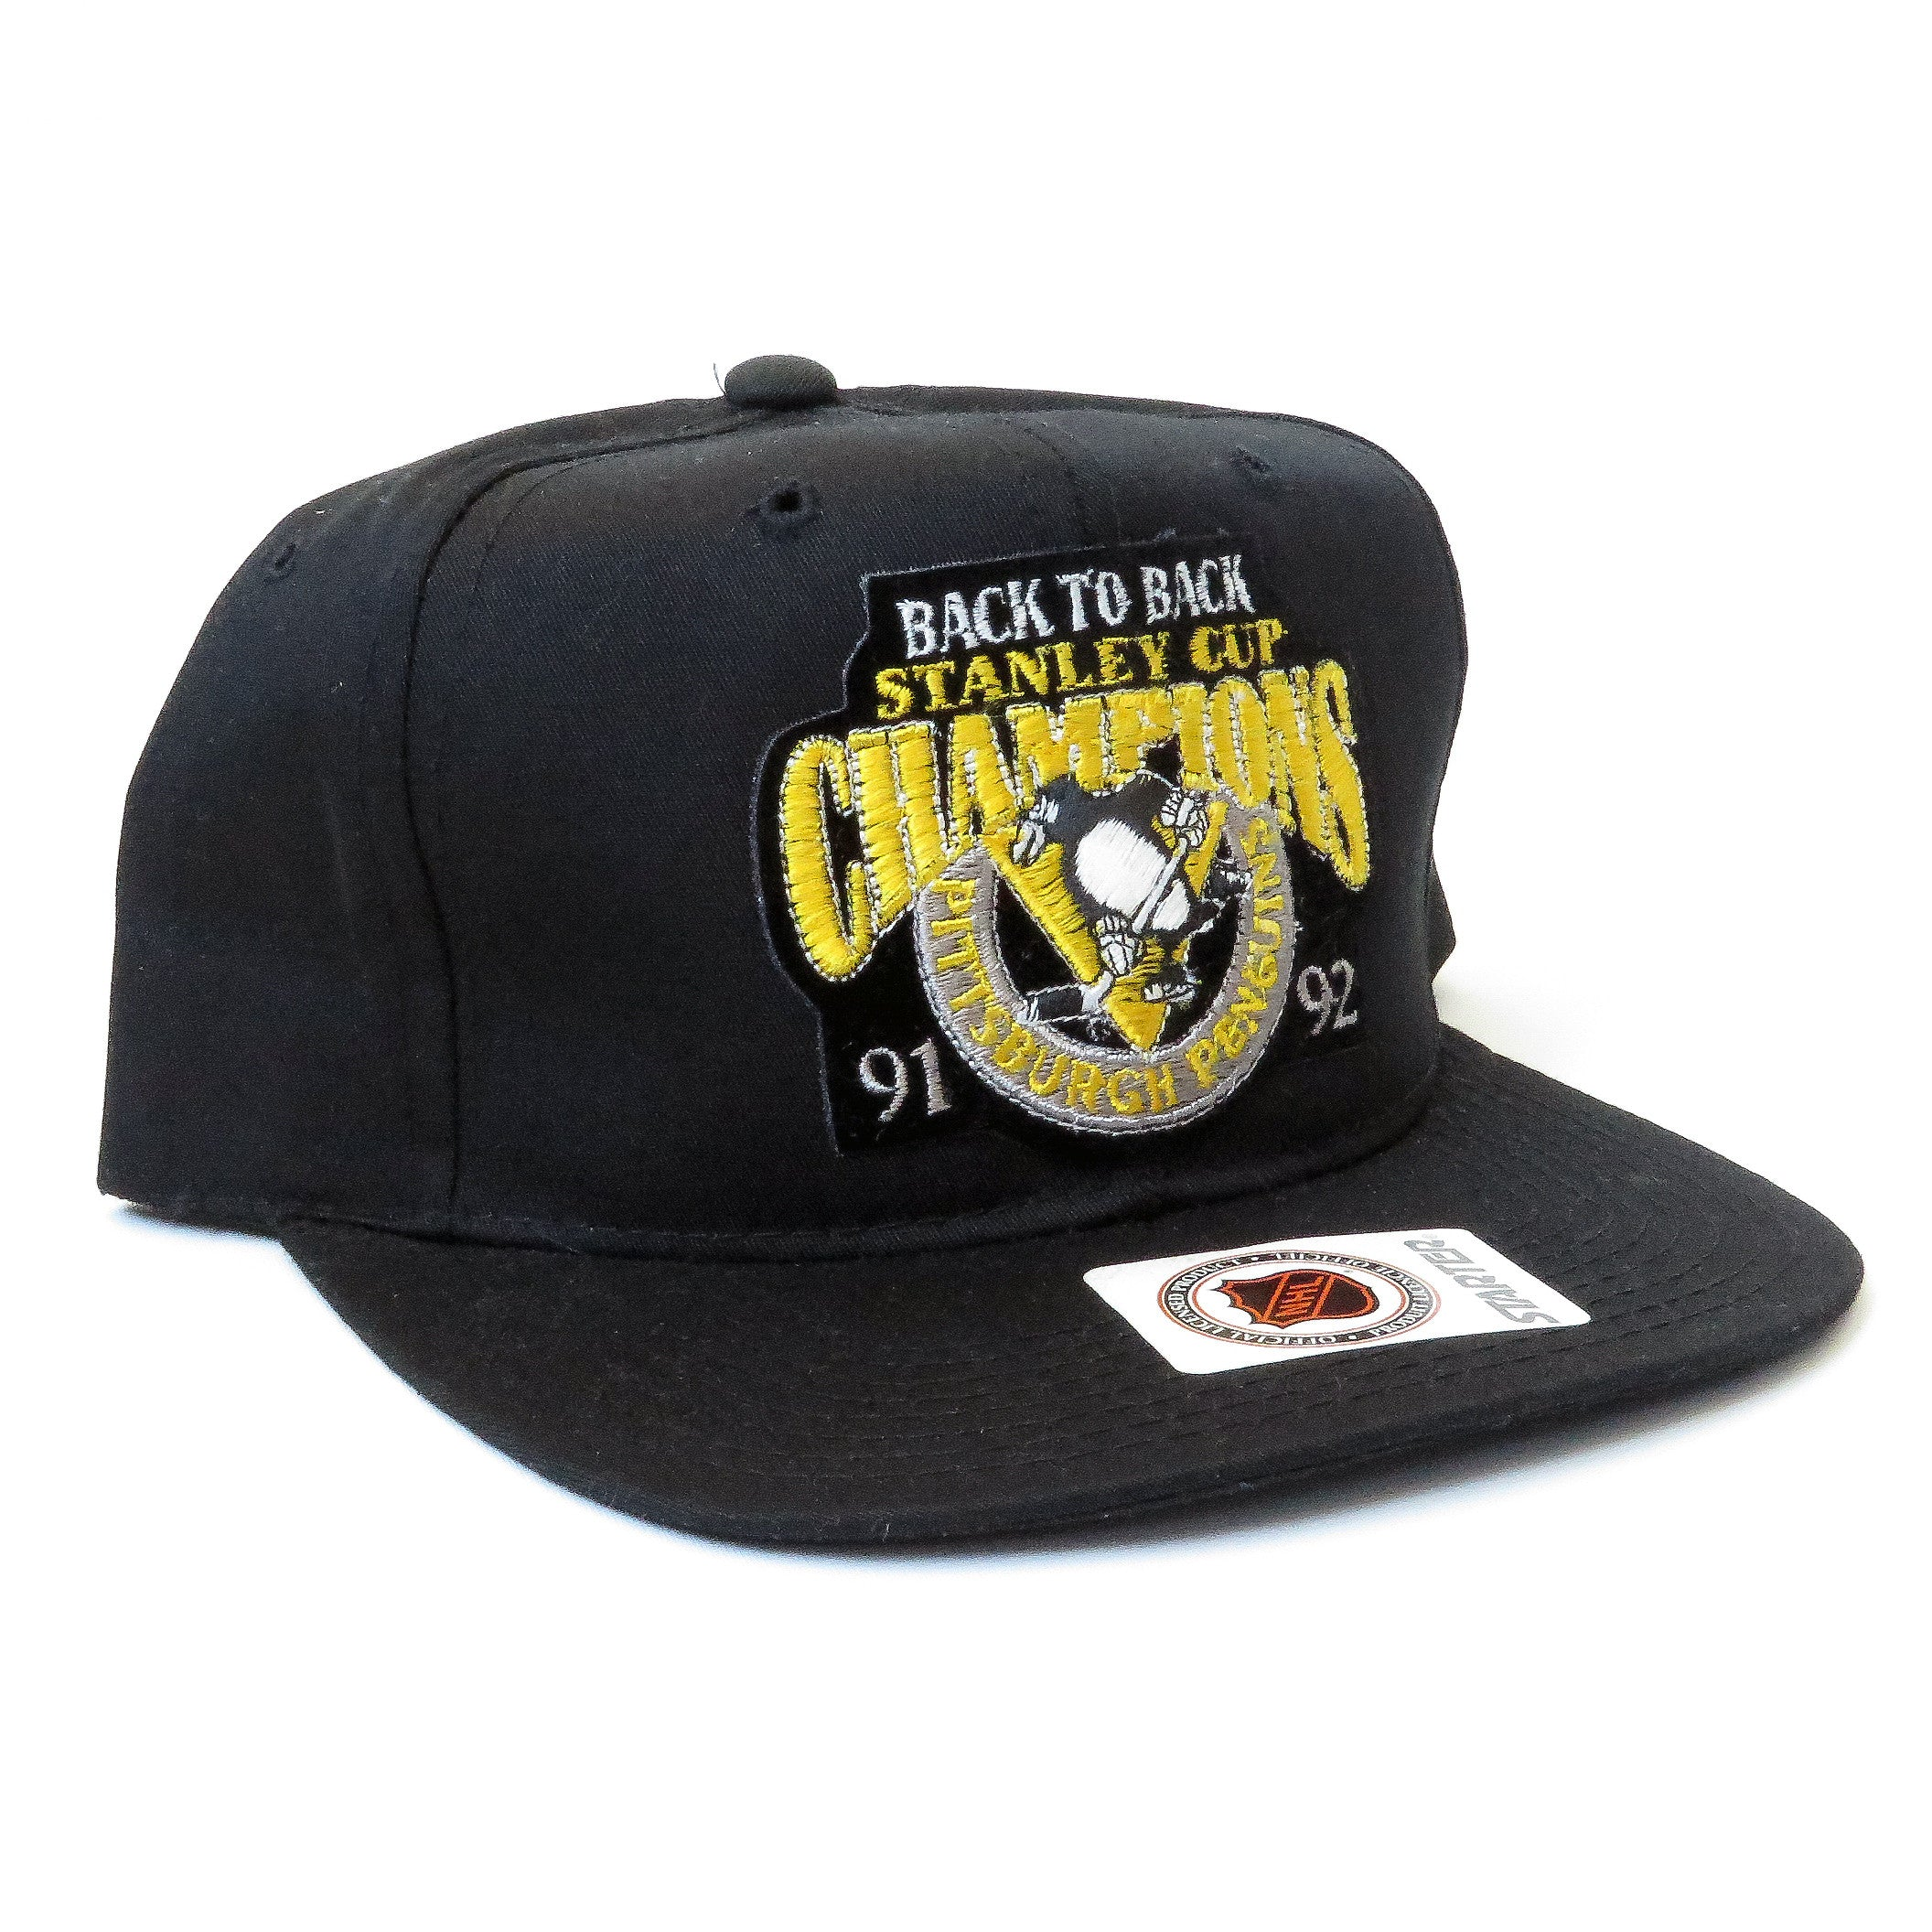 Vintage Pittsburgh Penguins Back To Back Snapback Hat